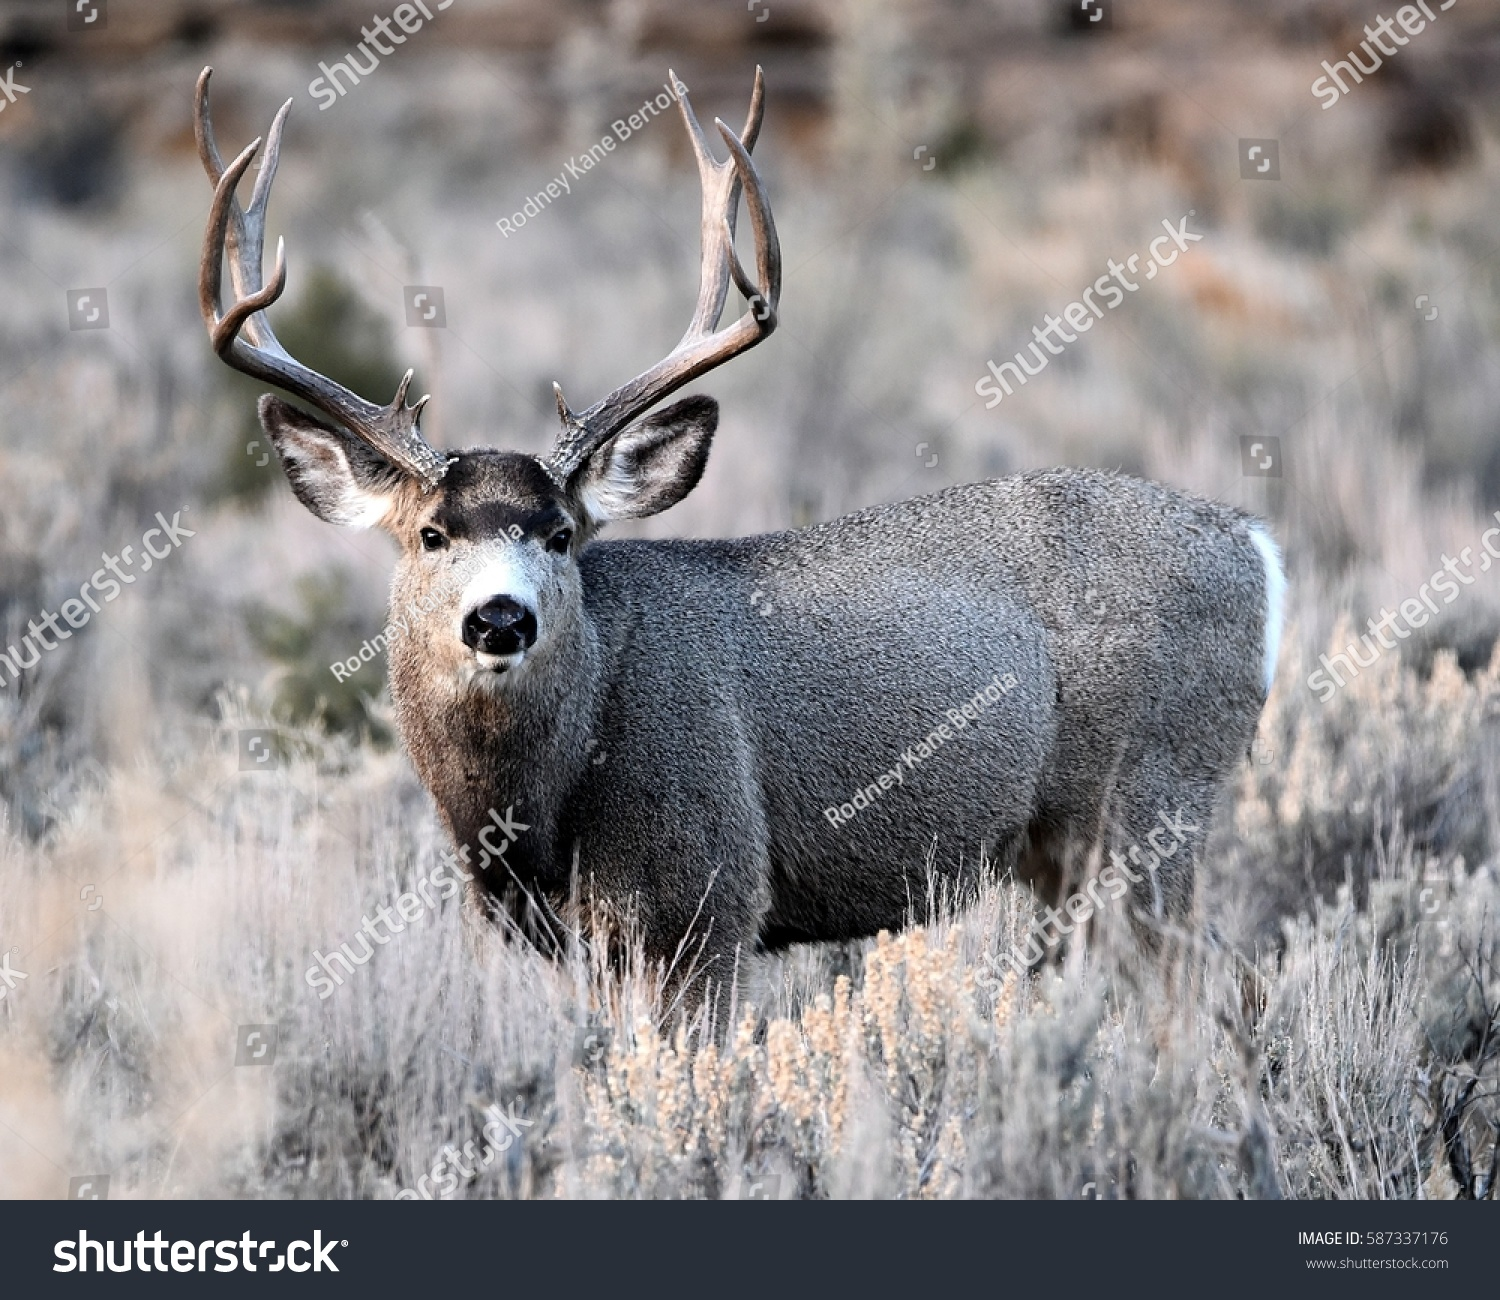 MULE DEER/BIG BUCK/MULE DEER #587337176